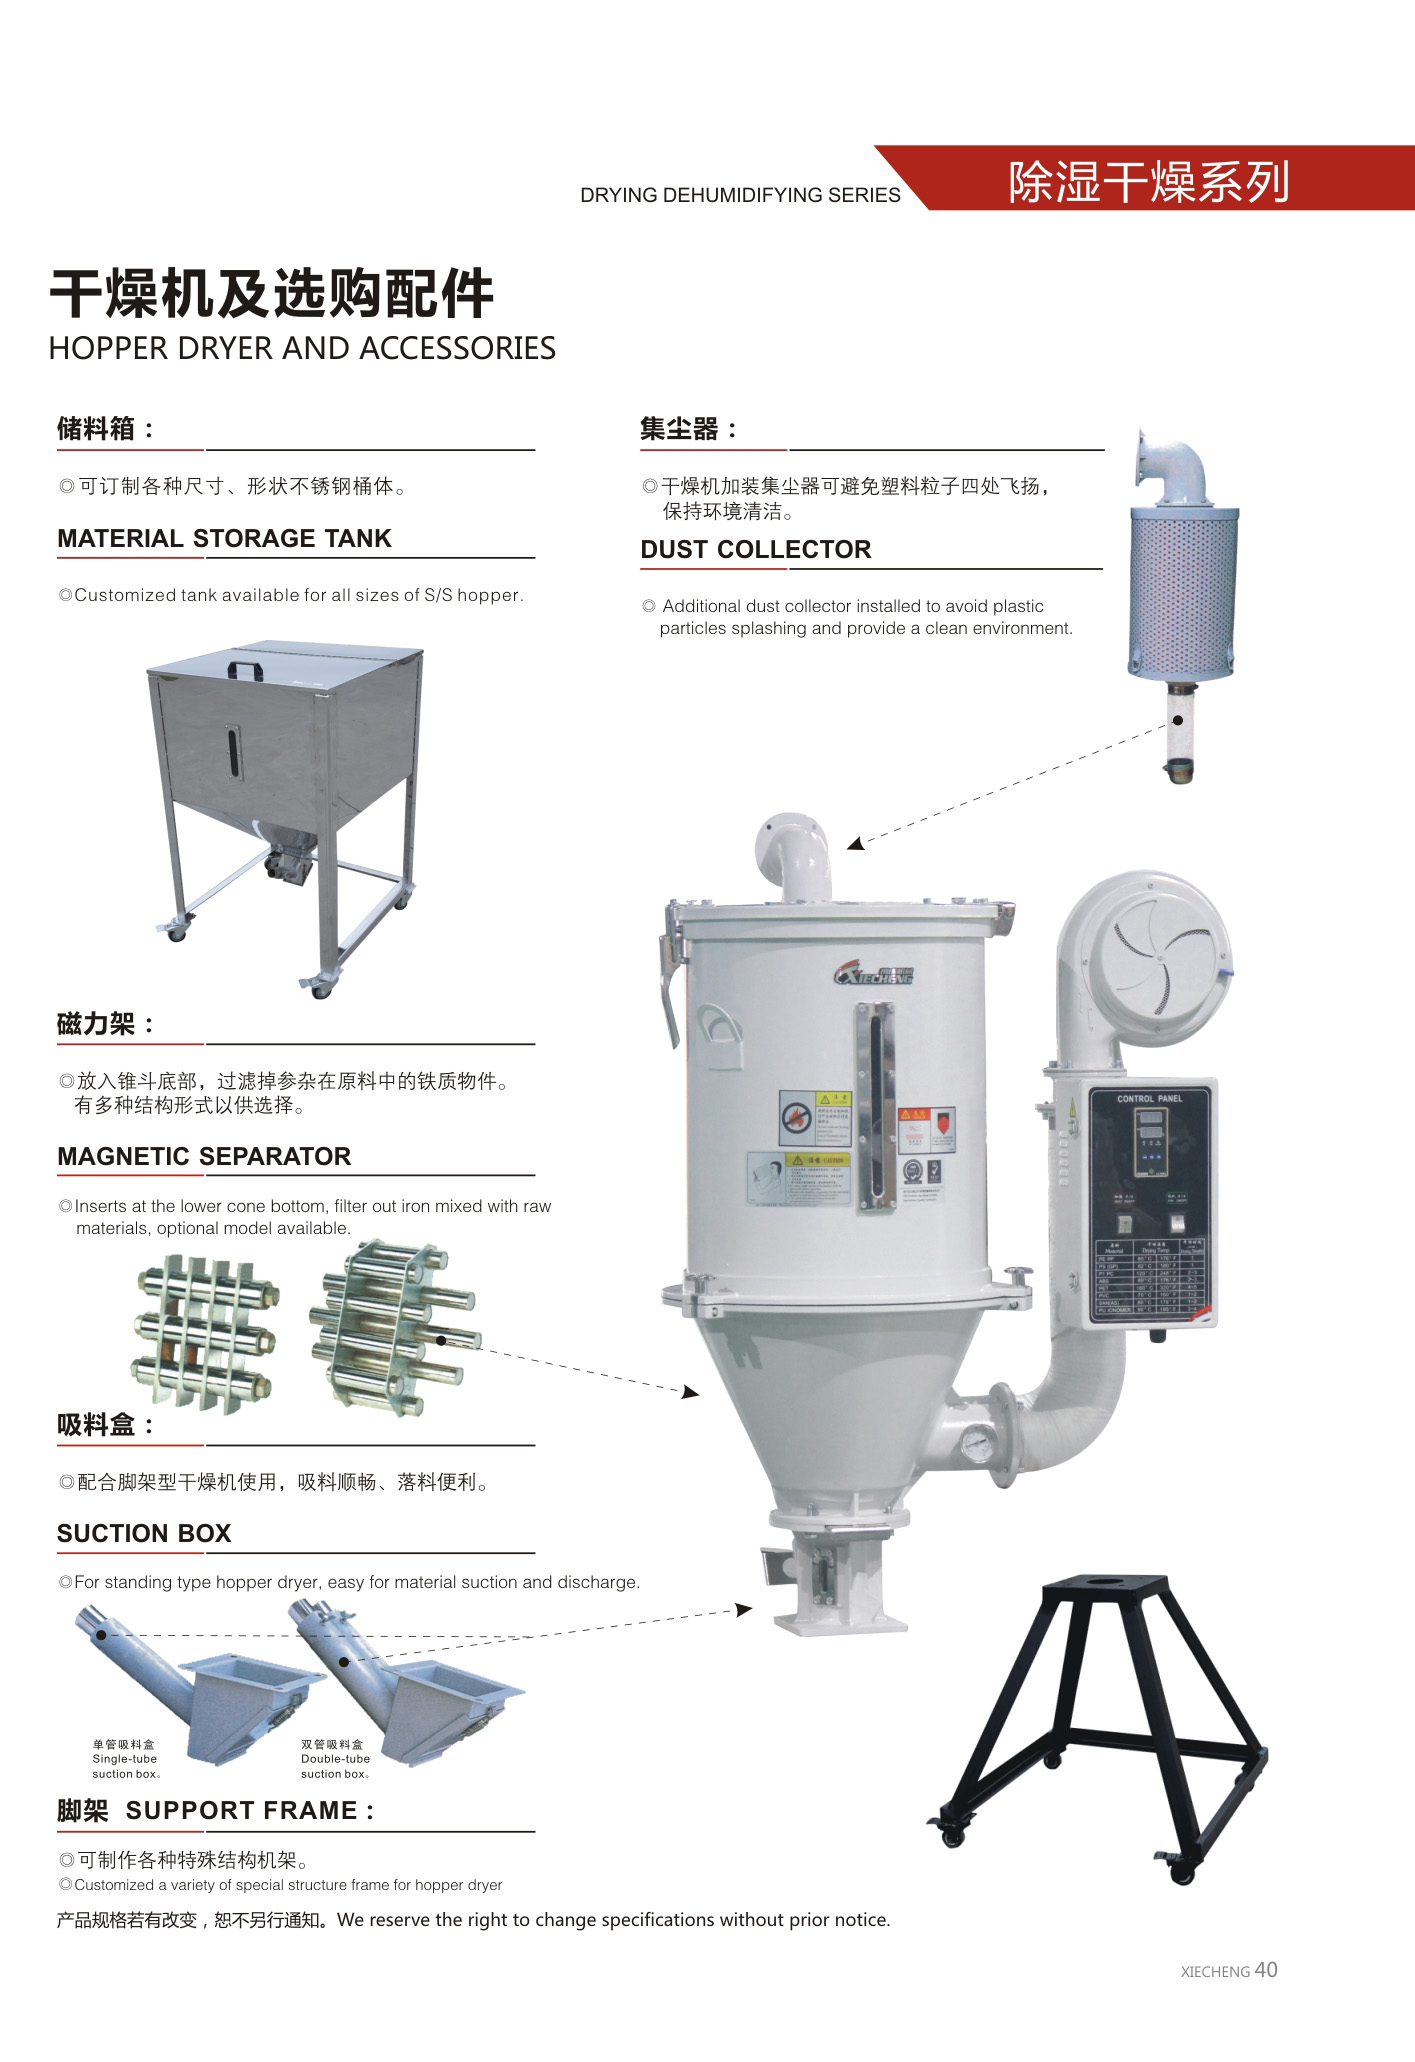 HOPPER DRYER AND ACCESSORIES